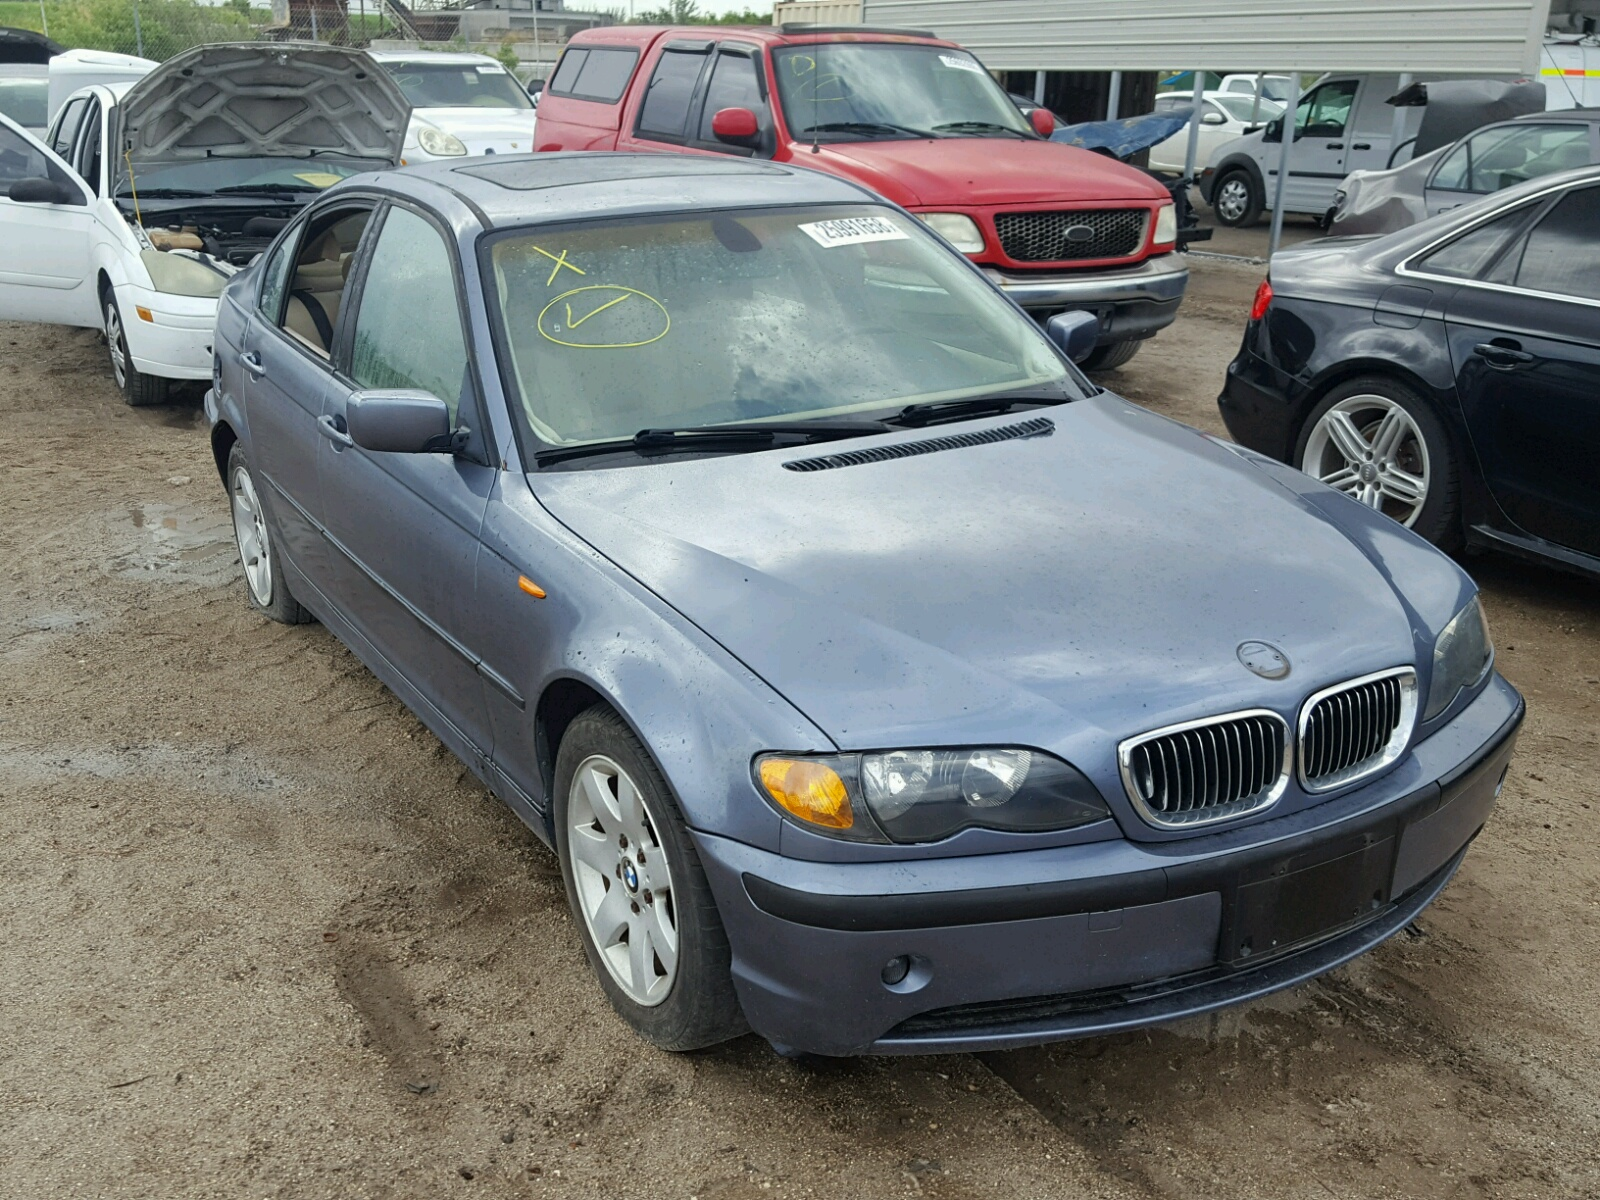 Auto Auction Ended On VIN WBAVANL BMW I In CO - 2004 bmw 328i